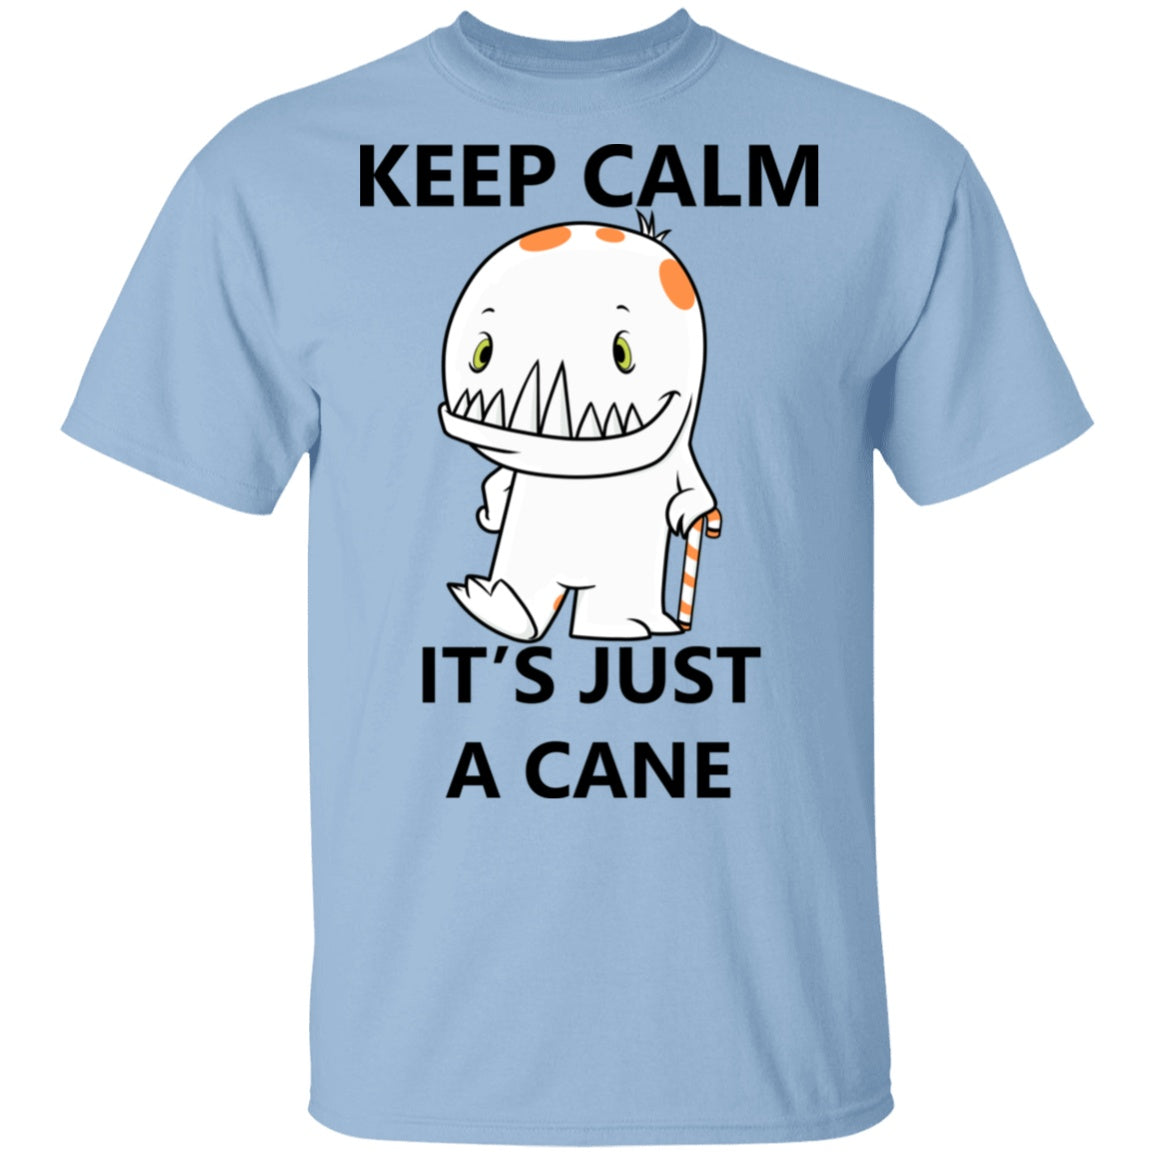 Keep Calm It's Just A Cane Donny Shirts, Tank And Hoodie - The Unchargeables